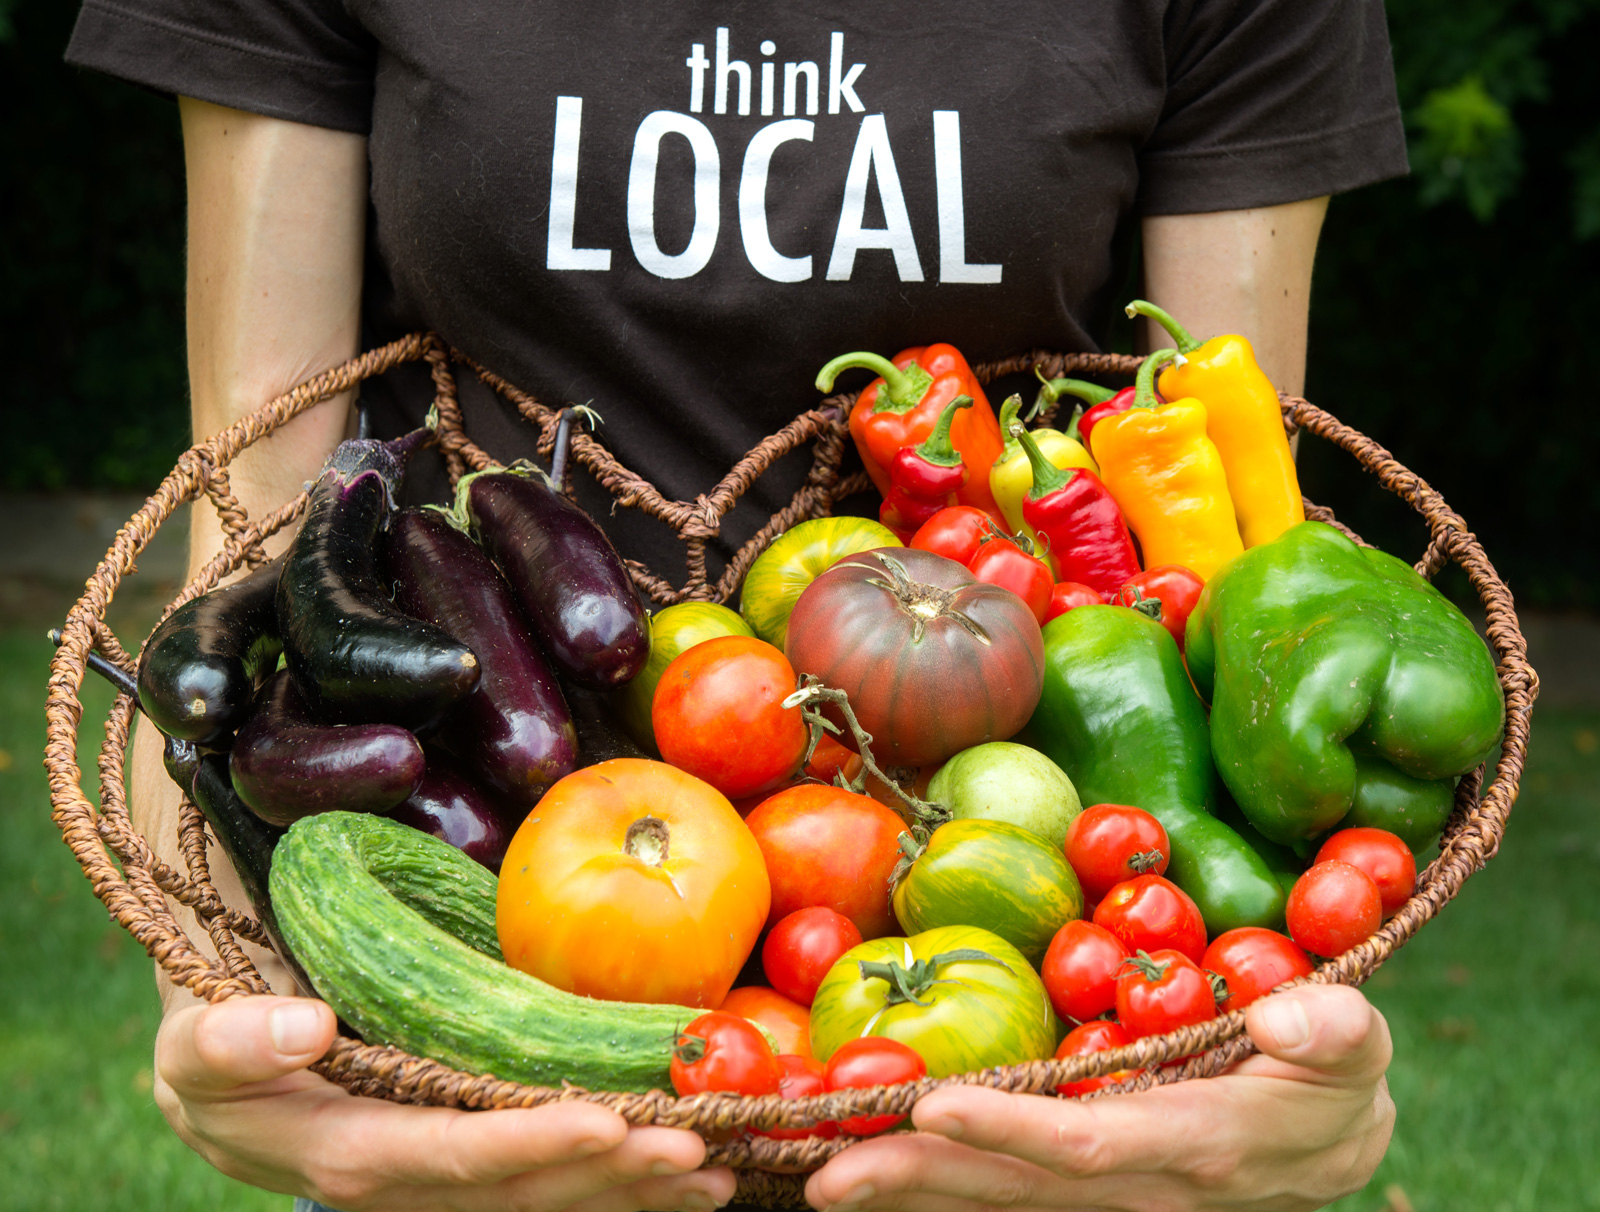 holding-a-basket-of-local-produce